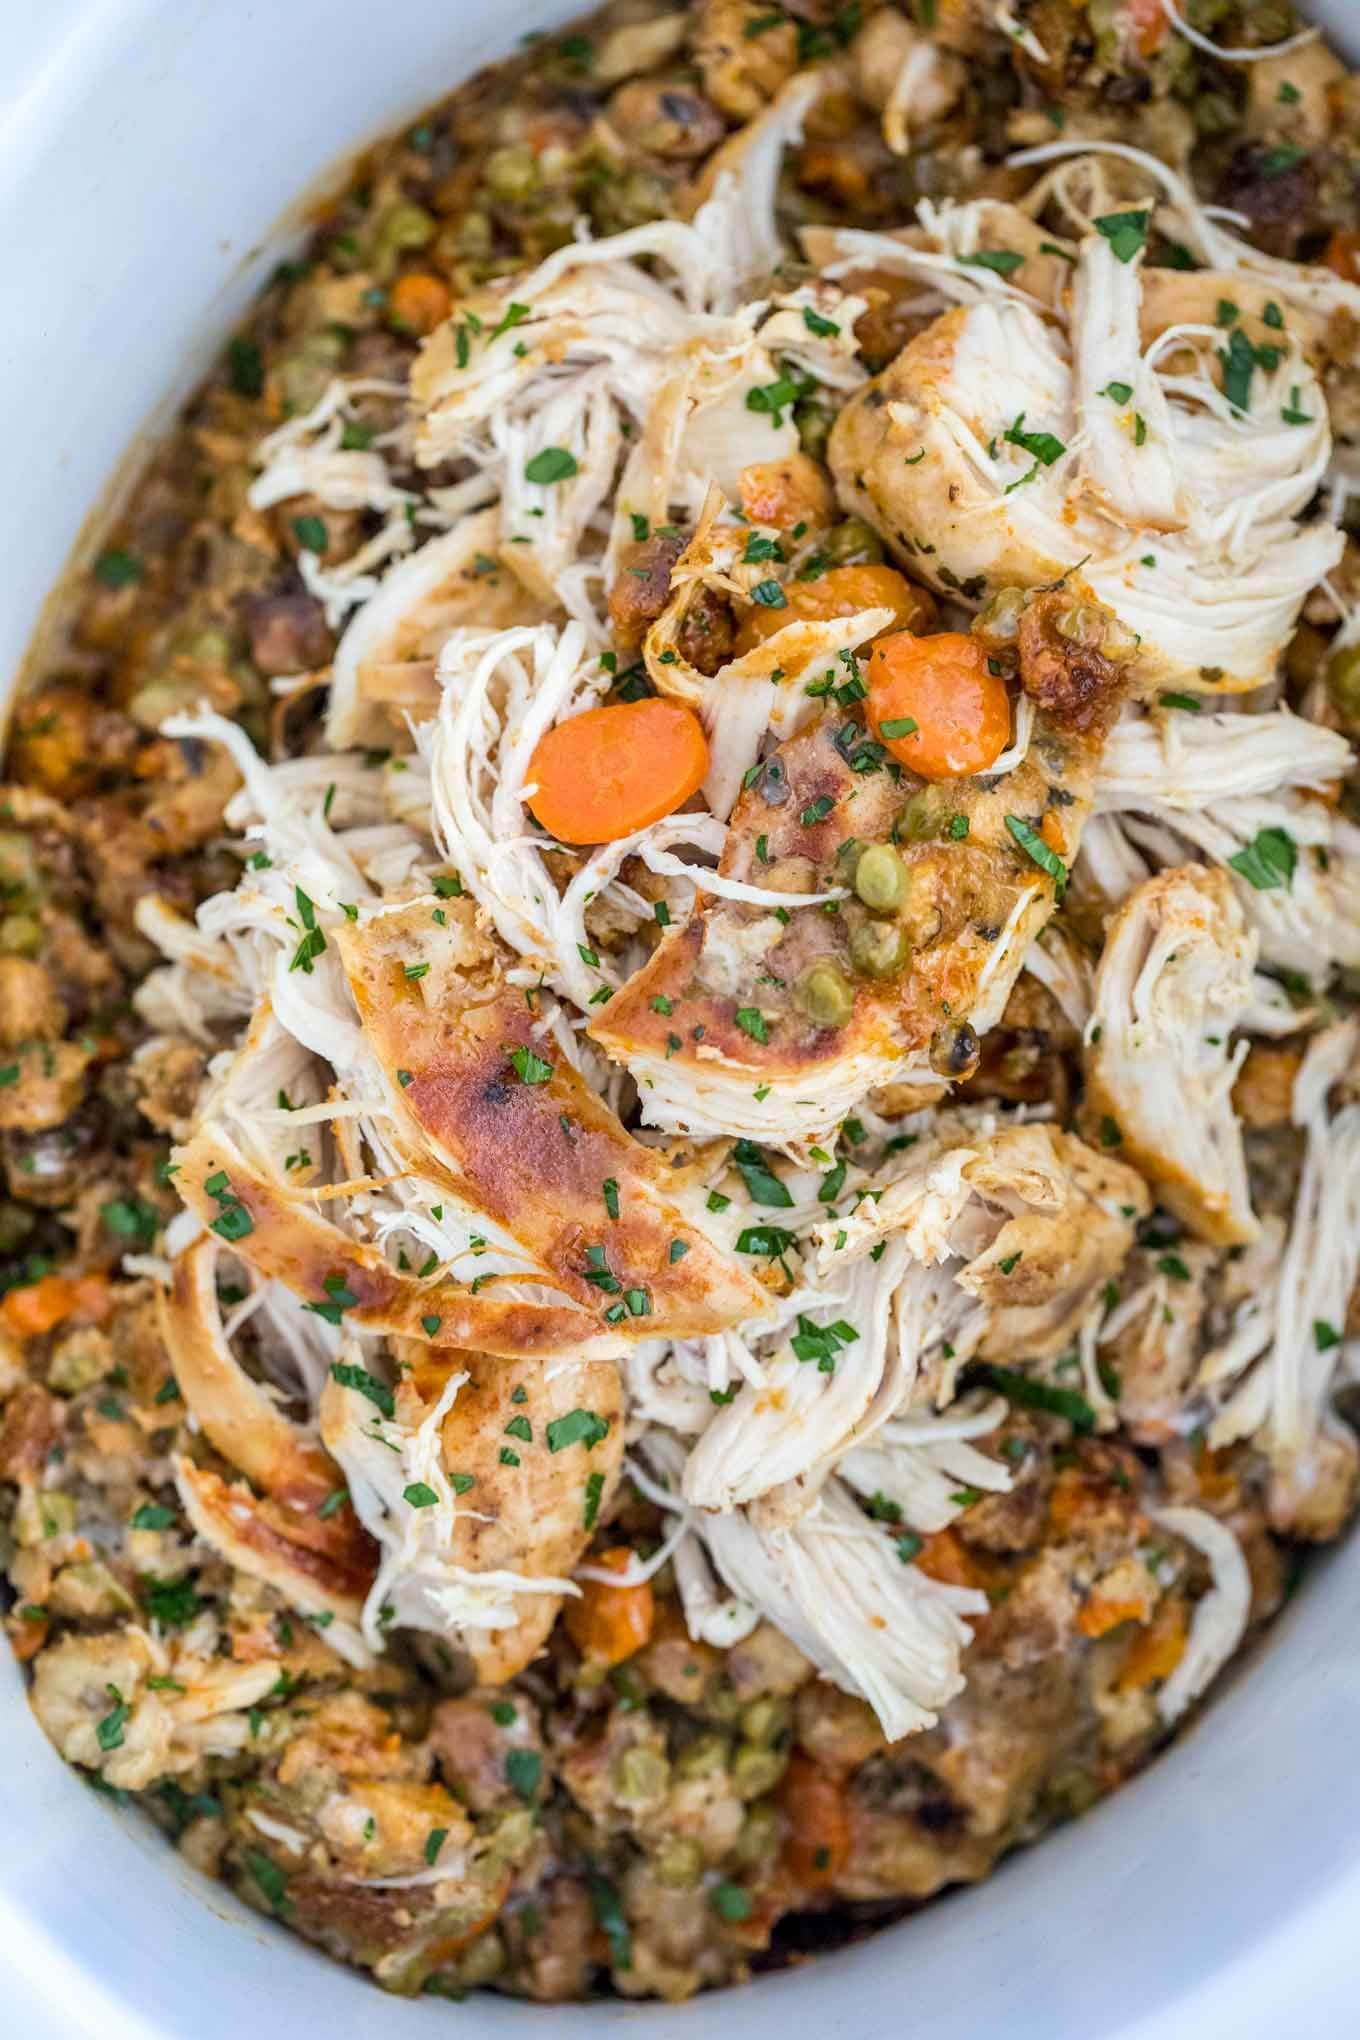 Crockpot chicken and stuffing is super easy to make